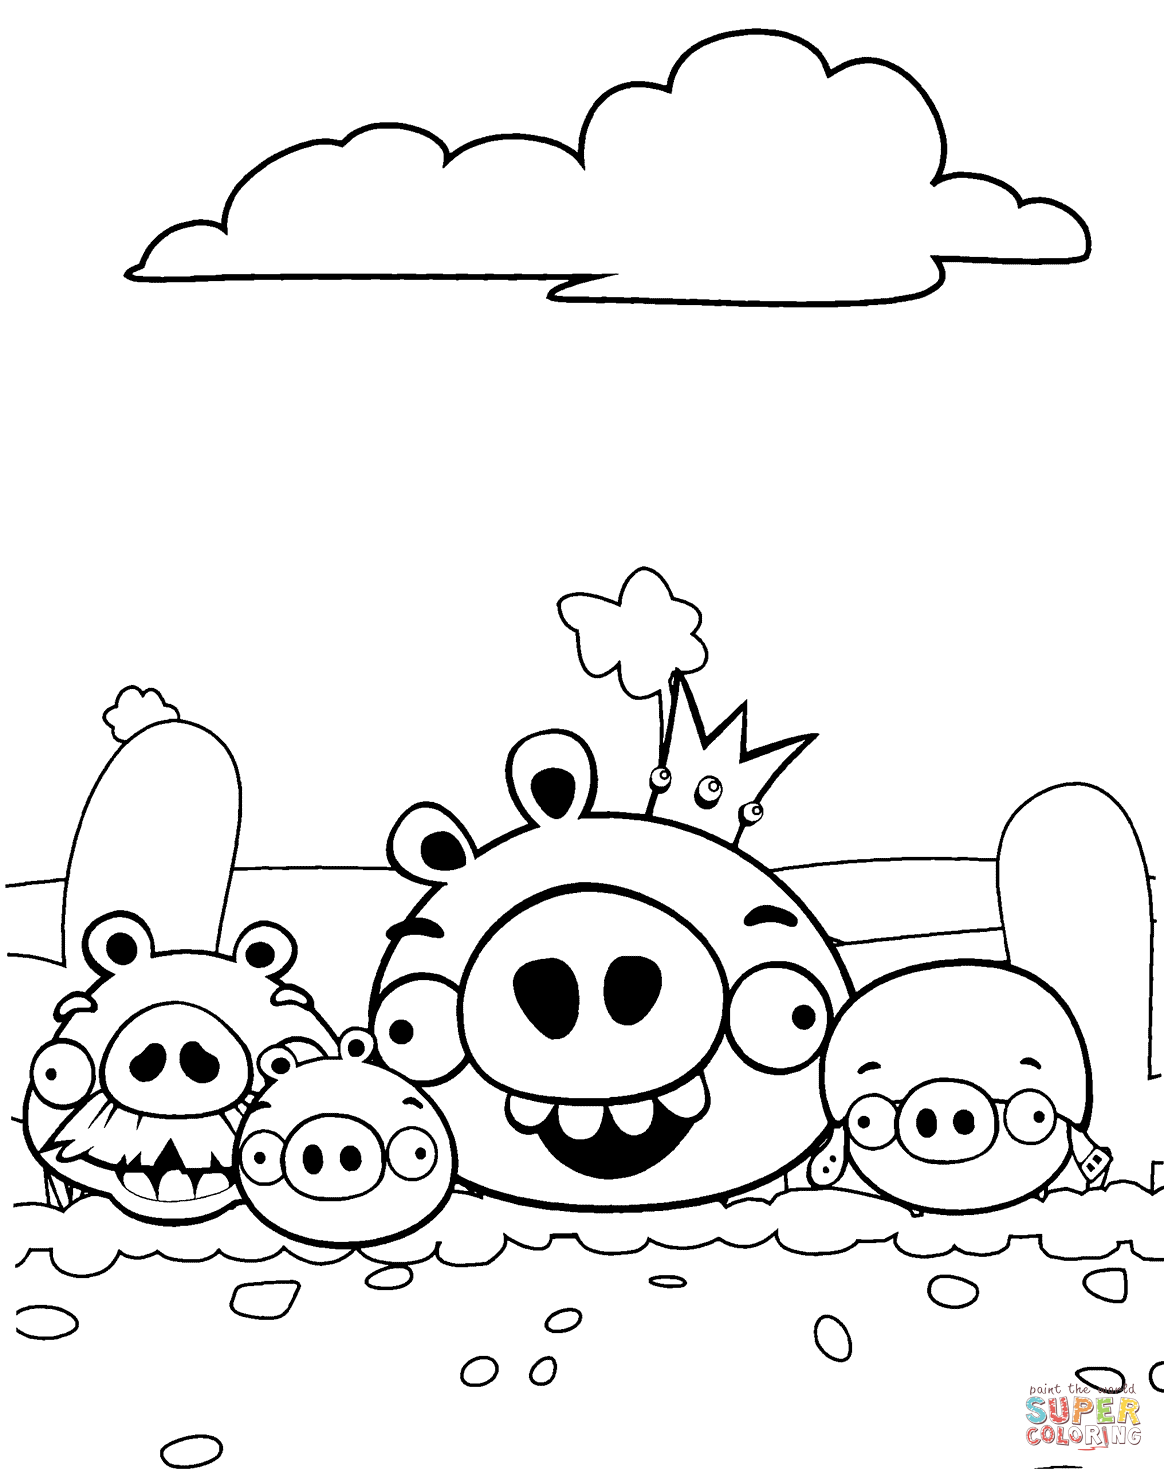 Bad Piggies Aka Pigs Coloring Page